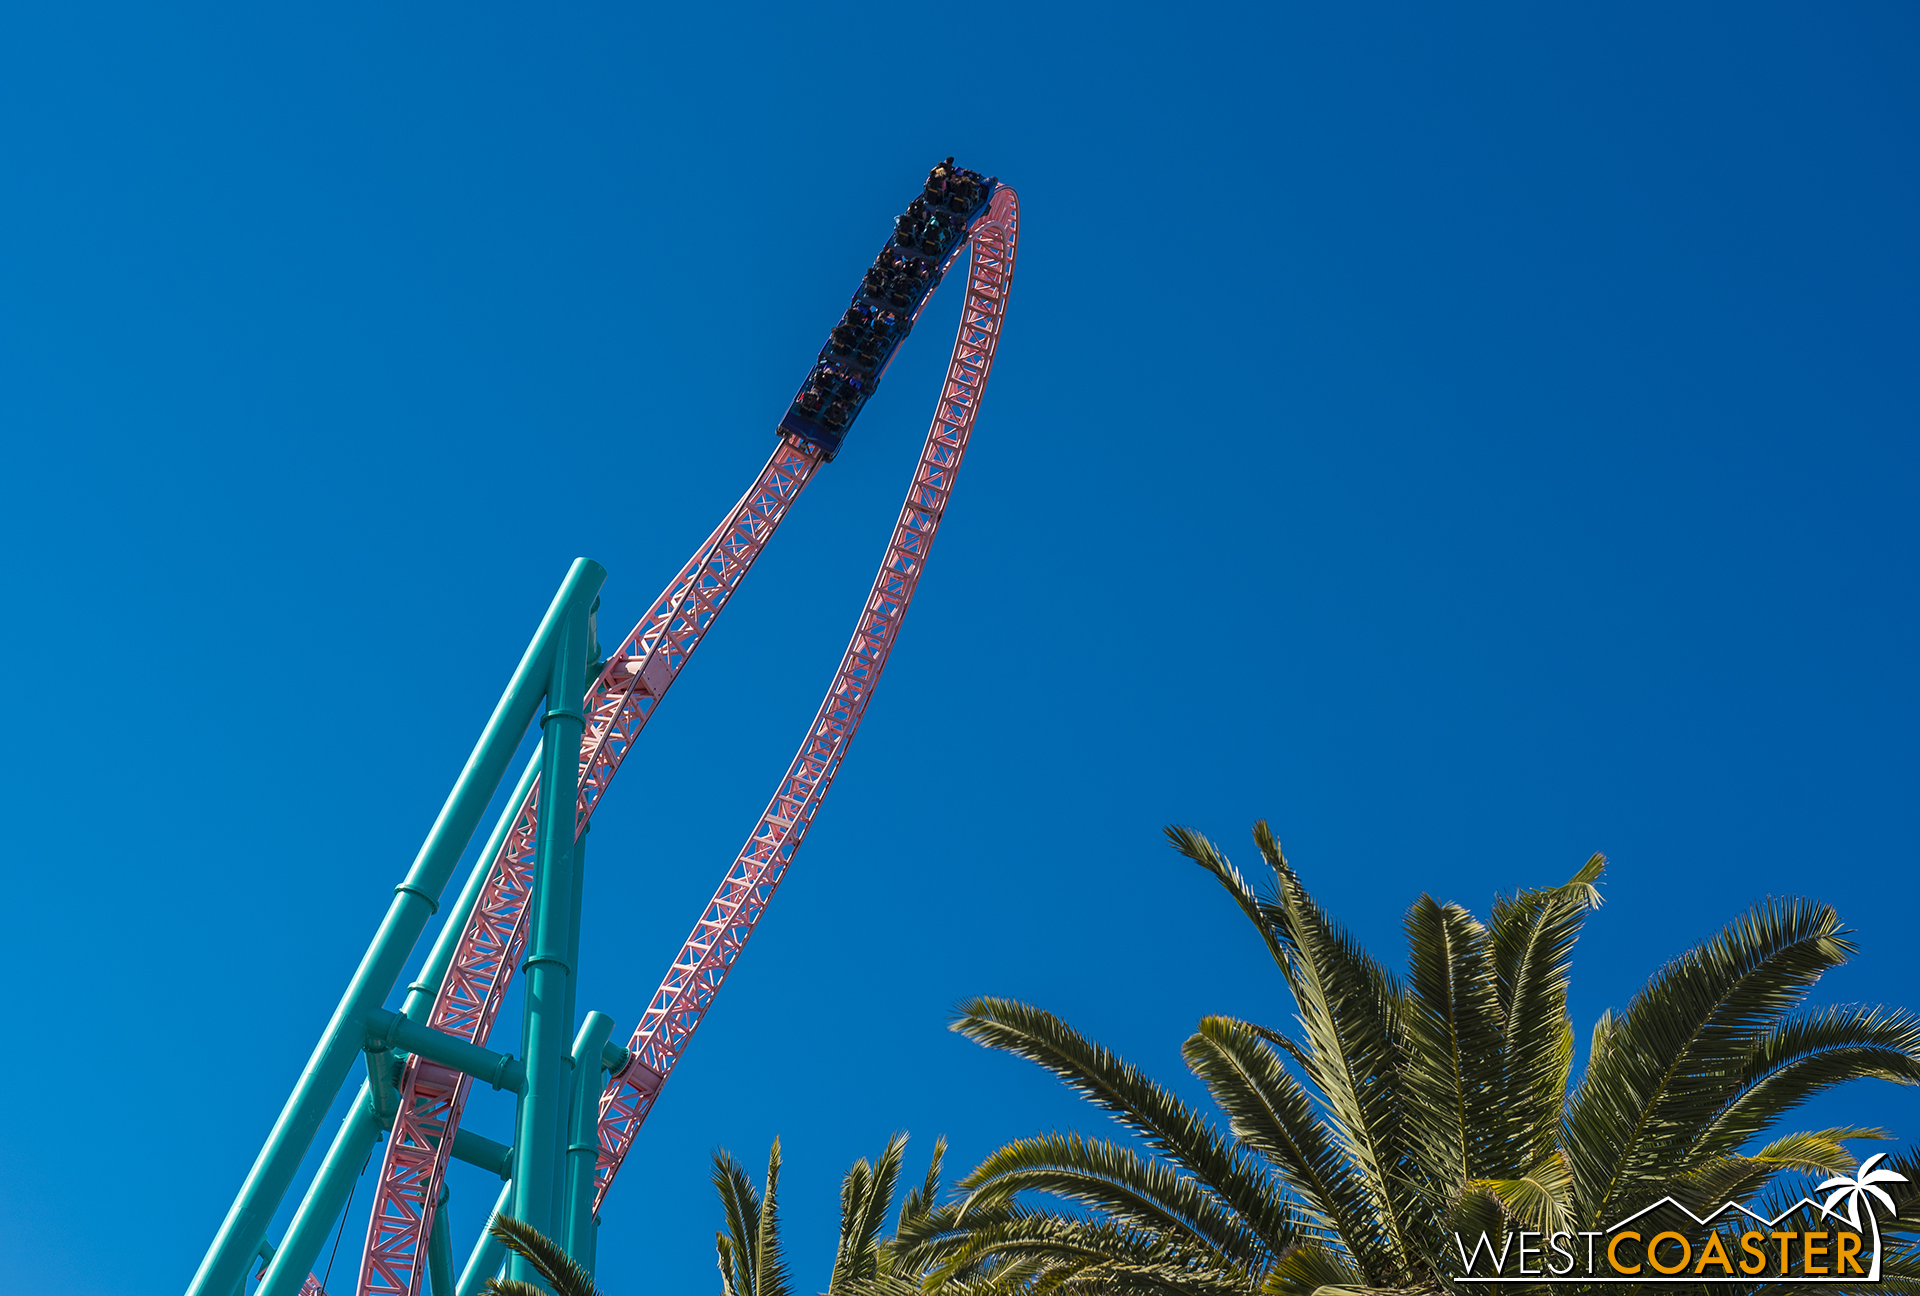 OMG XCELERATOR IS RUNNING!!!